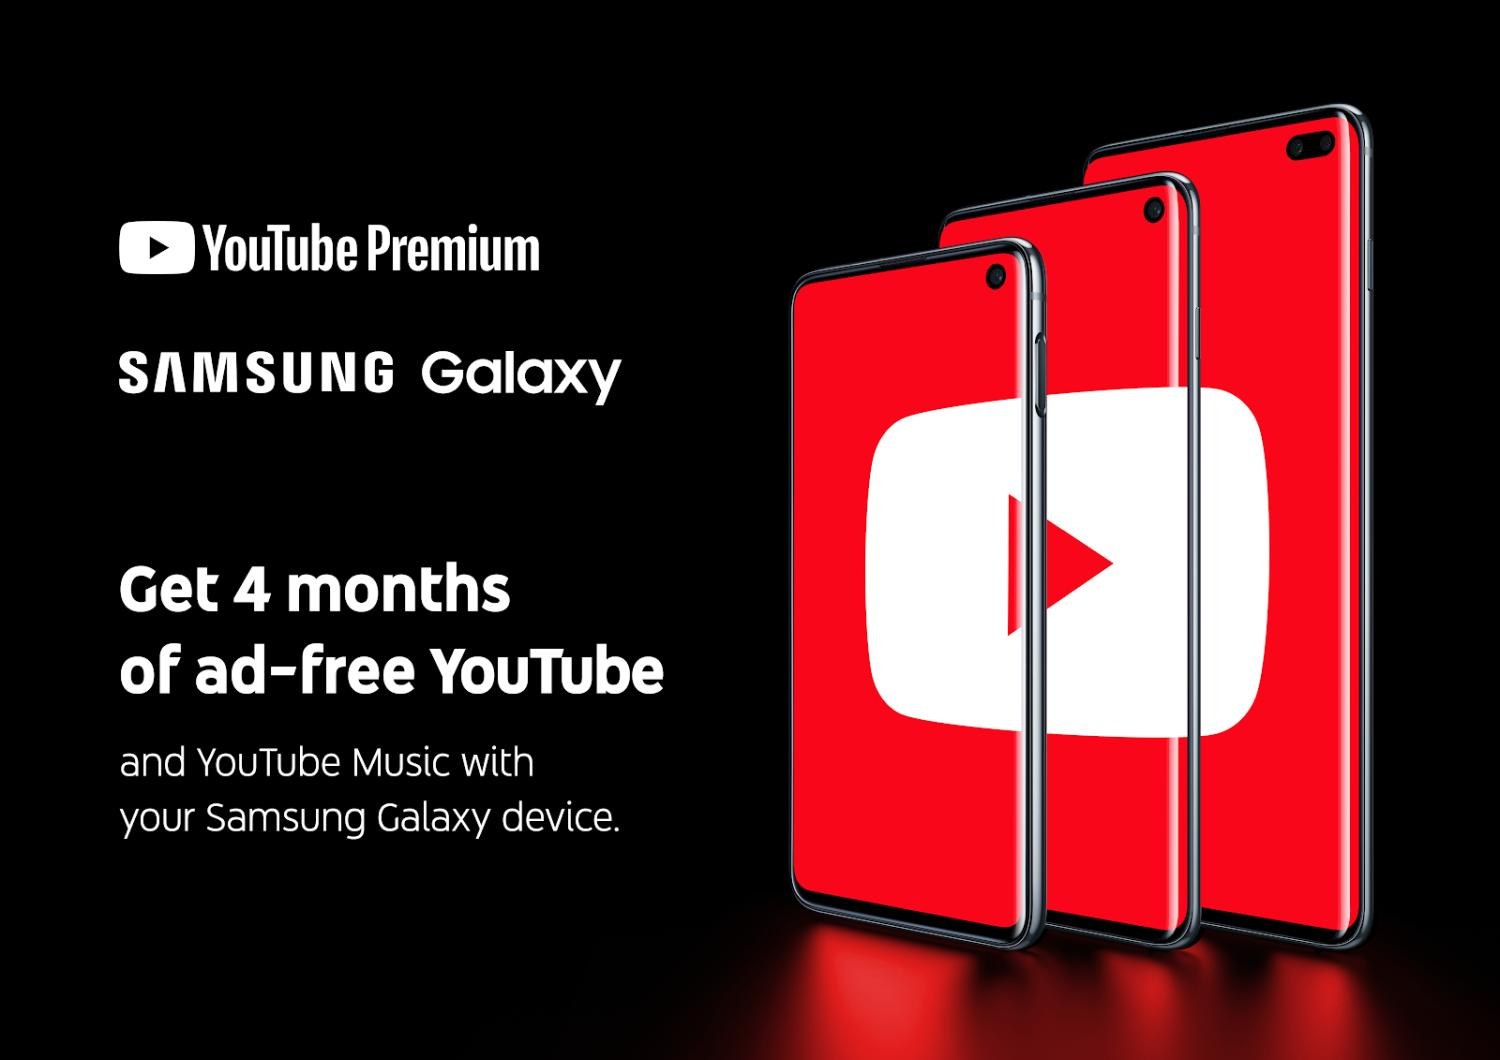 samsung galaxy youtube